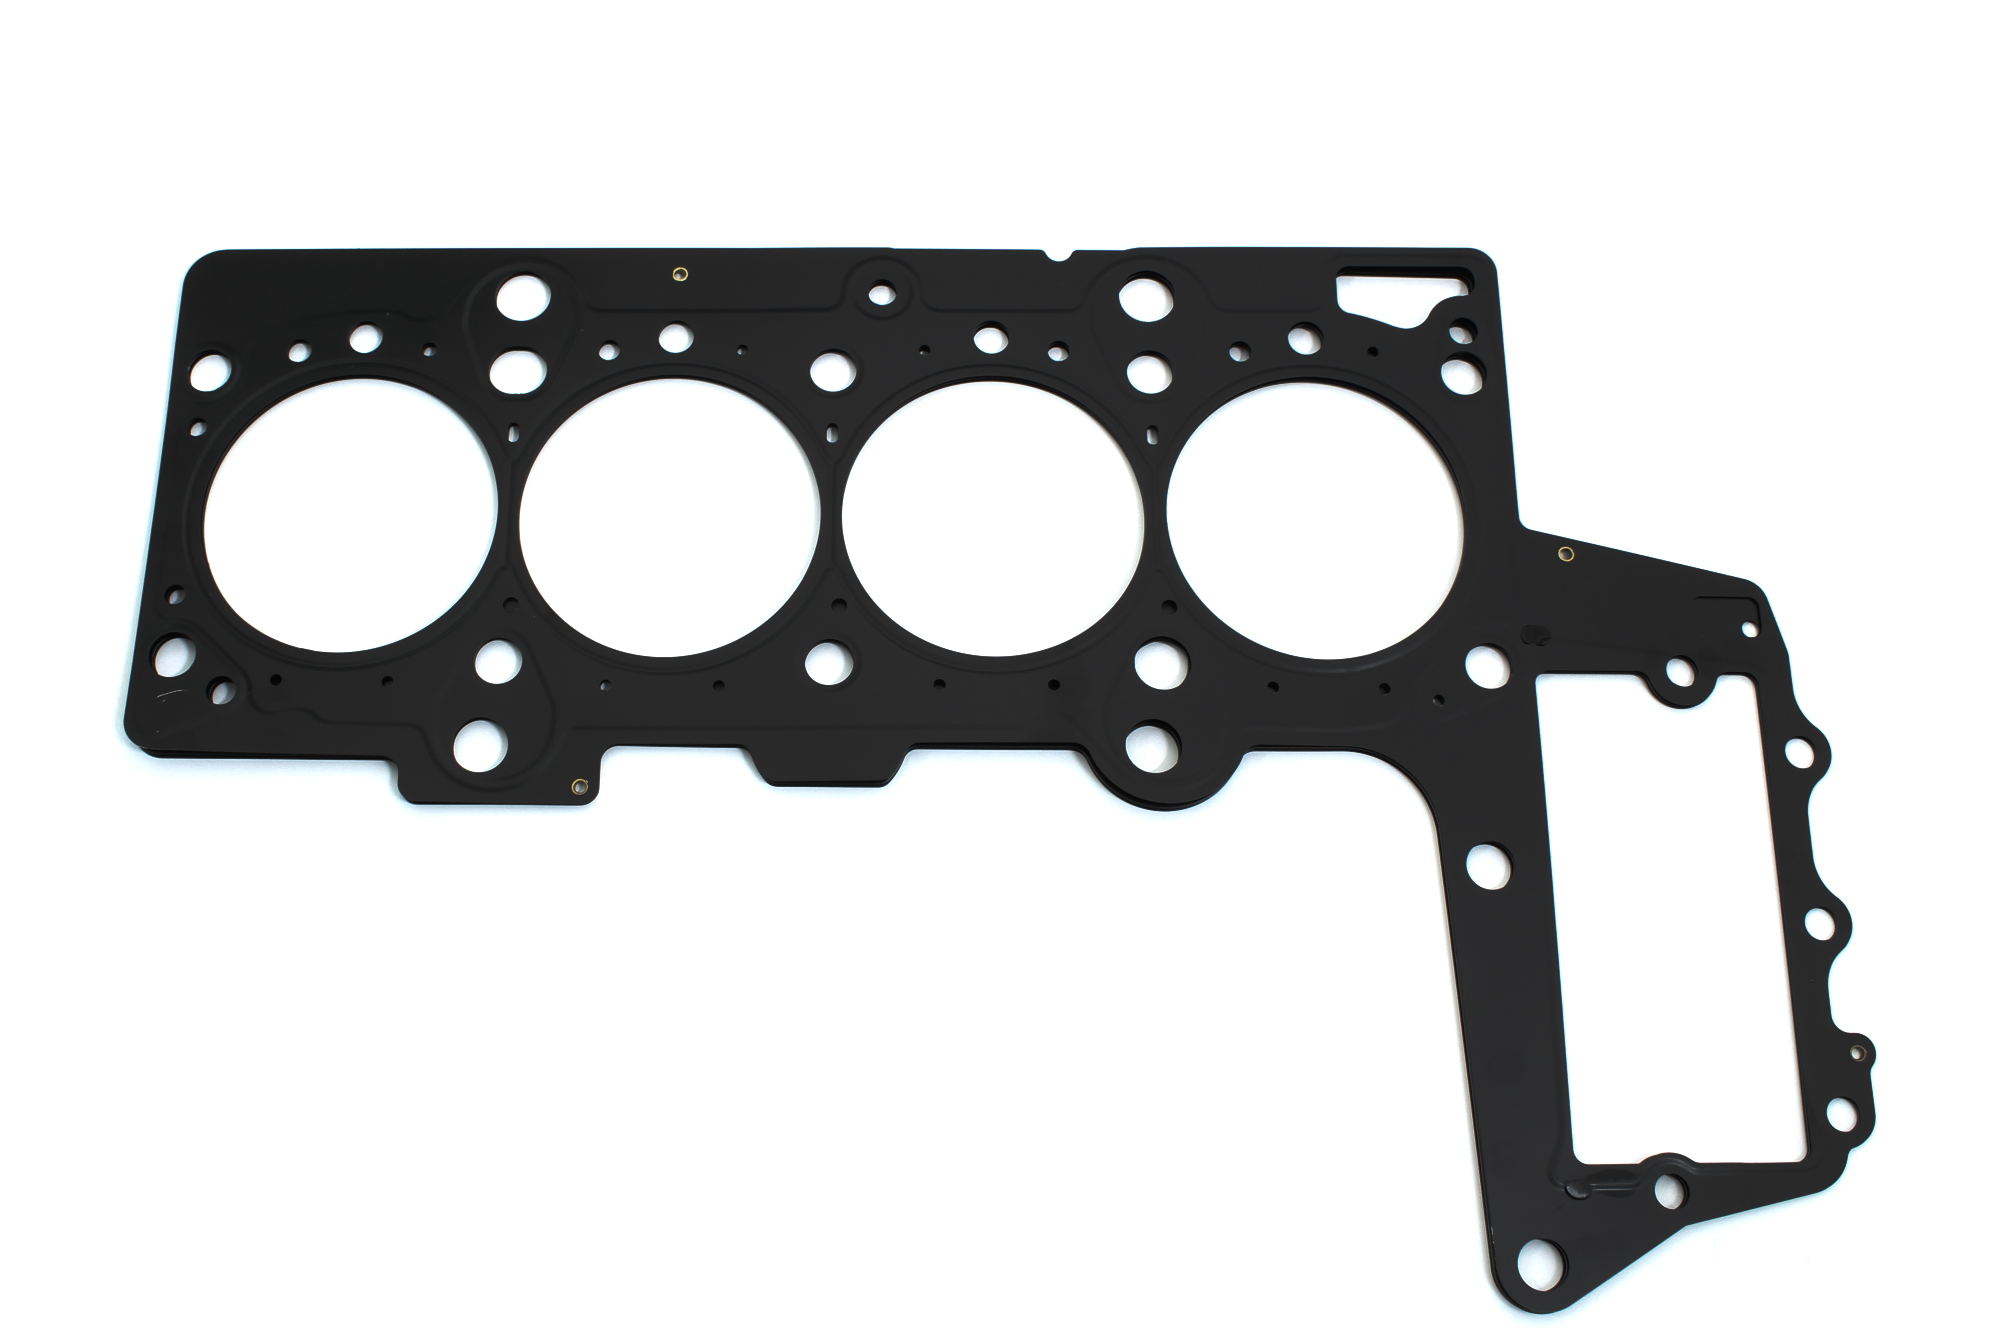 Cylinder head gasket the GASKETS Seal BMW 2.0 M47 M47D20 204D4 11127790052 NEW